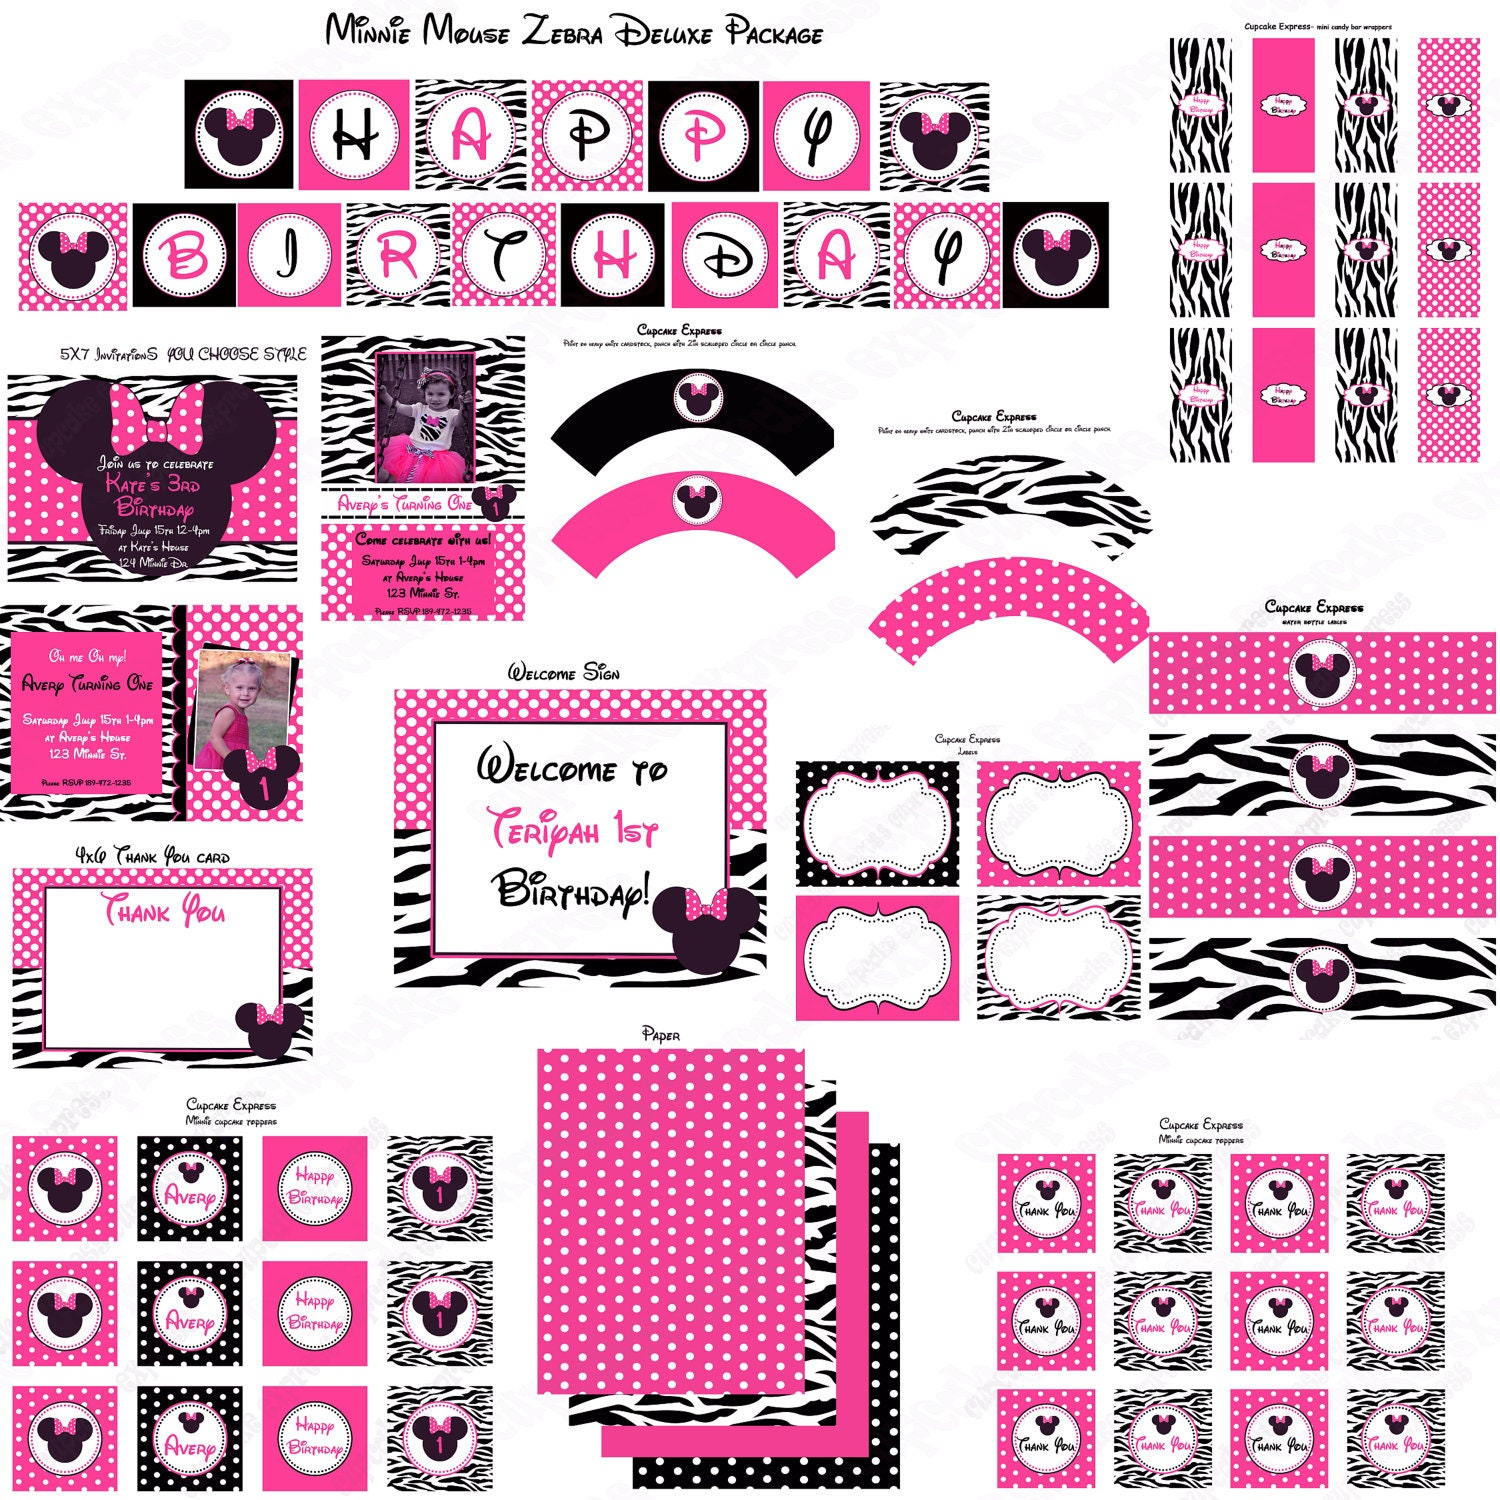 Diy Minnie Mouse Hot Pink Zebra Deluxe PRINTABLE Birthday